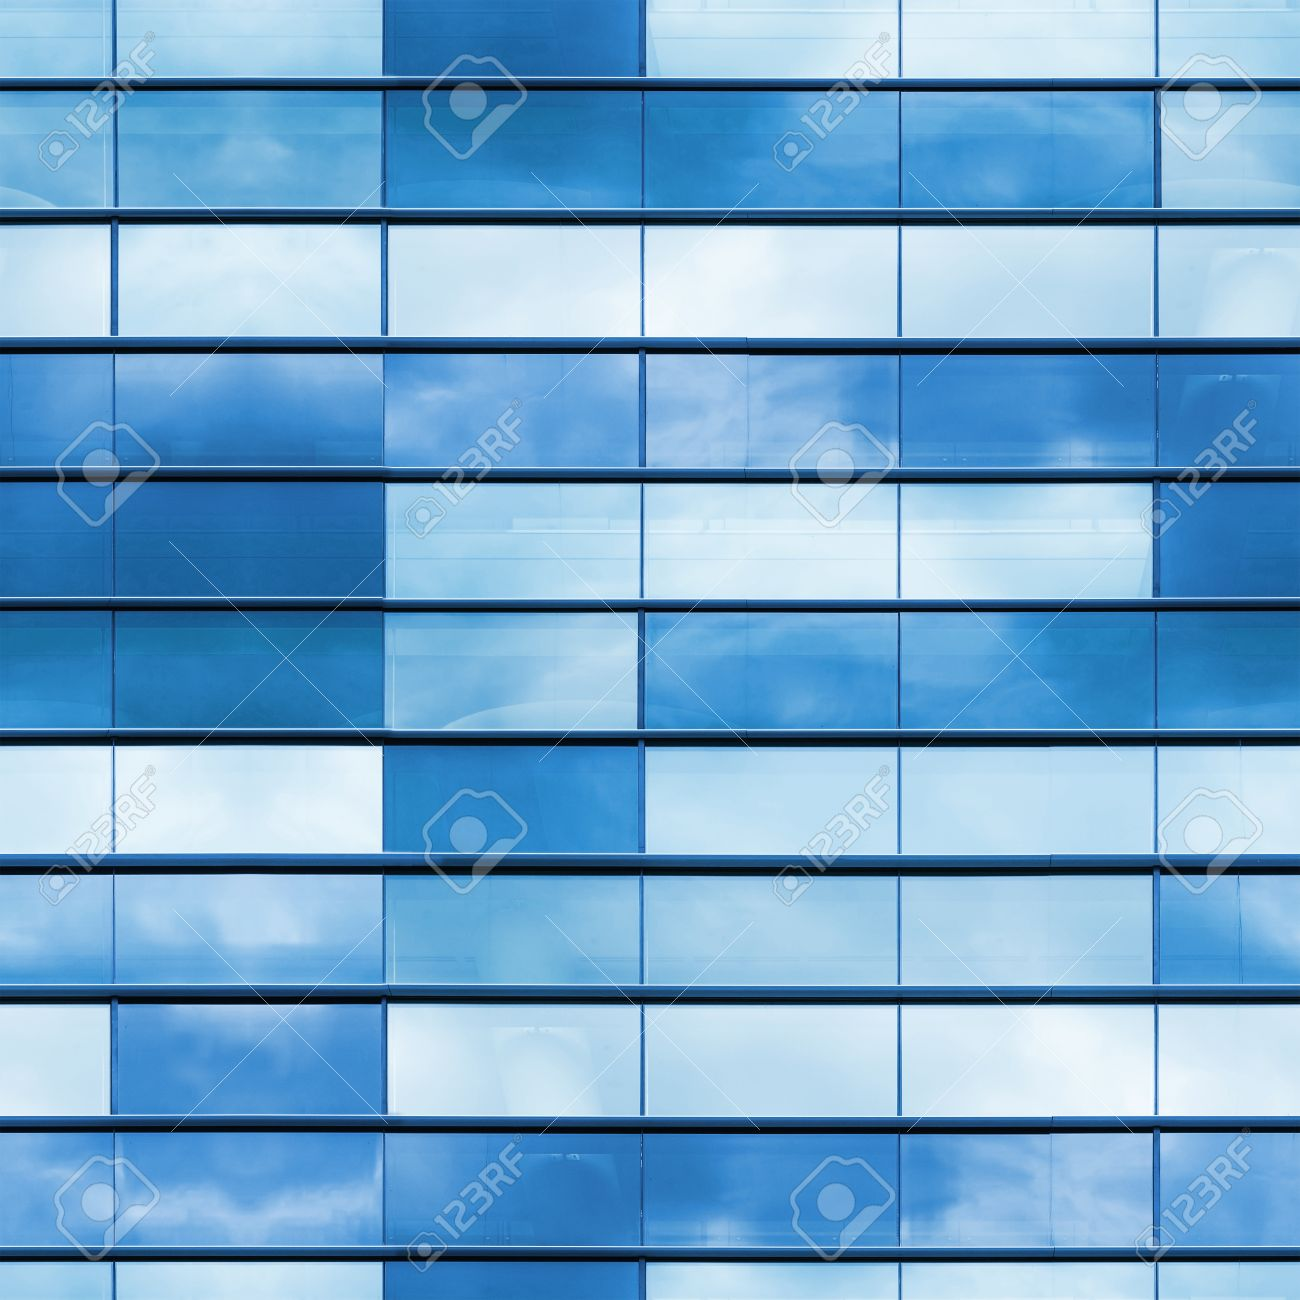 modern office building wall made of blue glass and steel frame square seamless photo texture blue glass top modern office